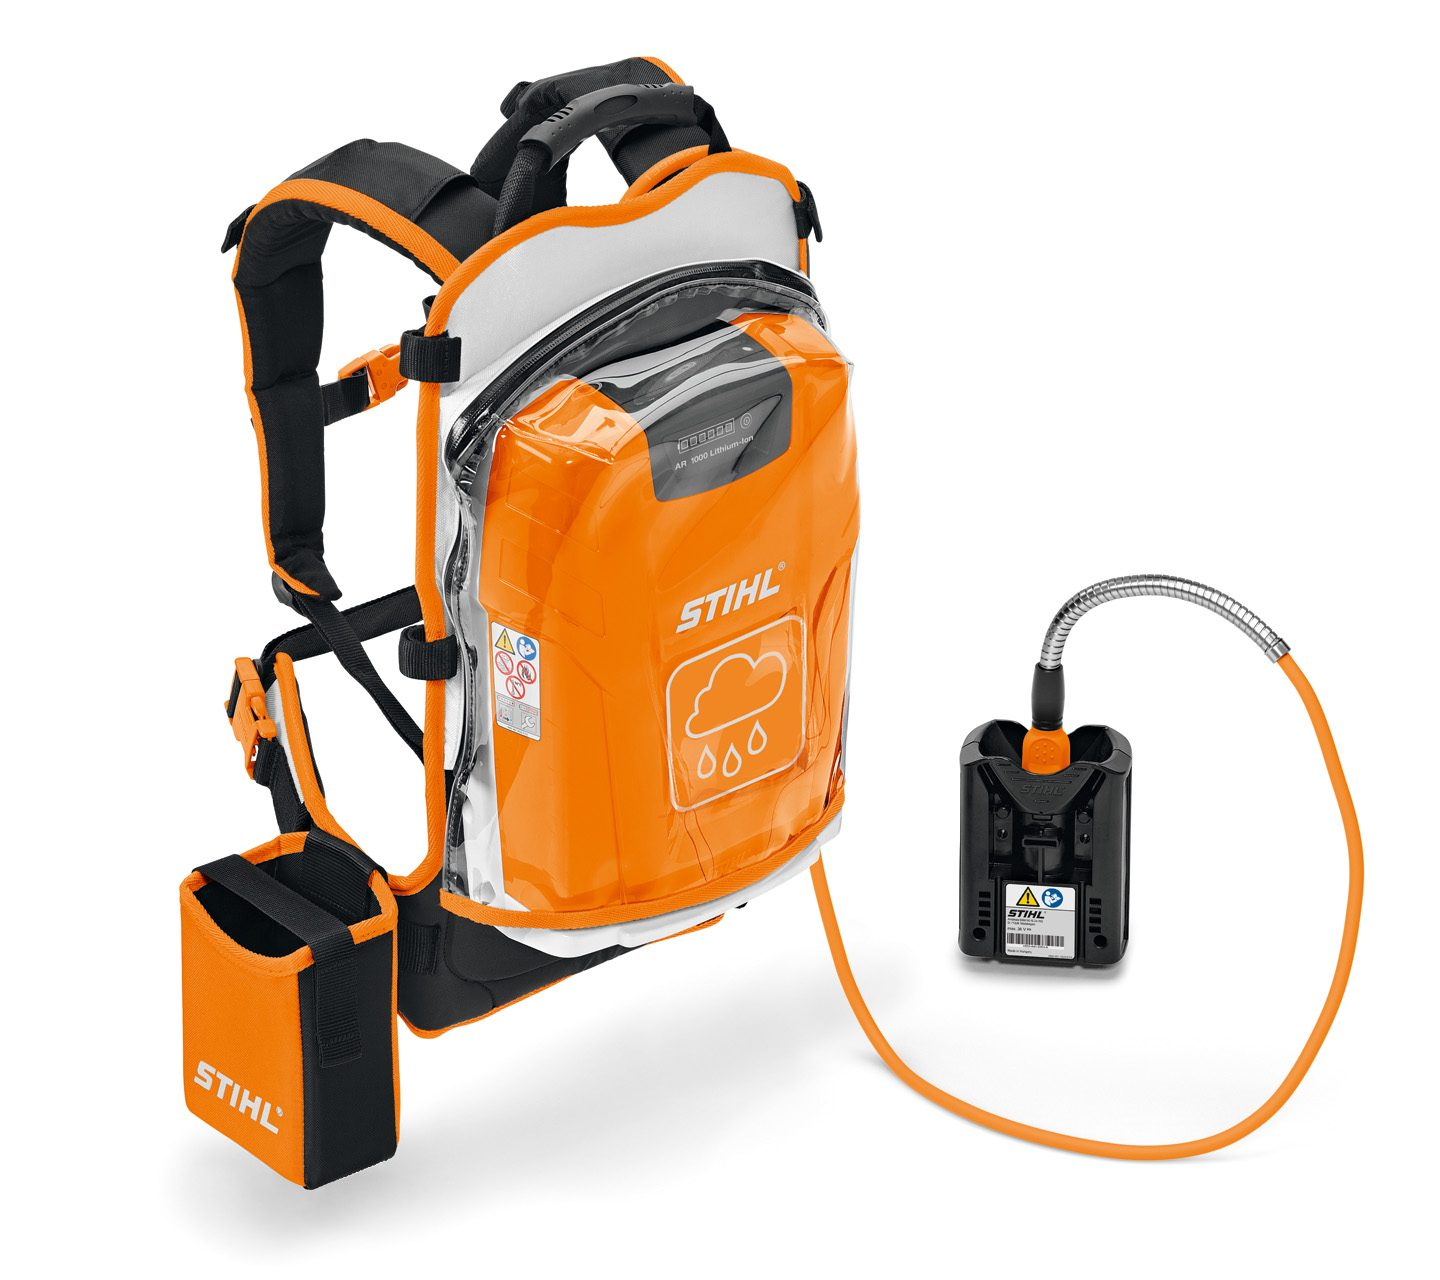 AR 1000 BACKPACK BATTERY FOR CORDLESS TOOLS